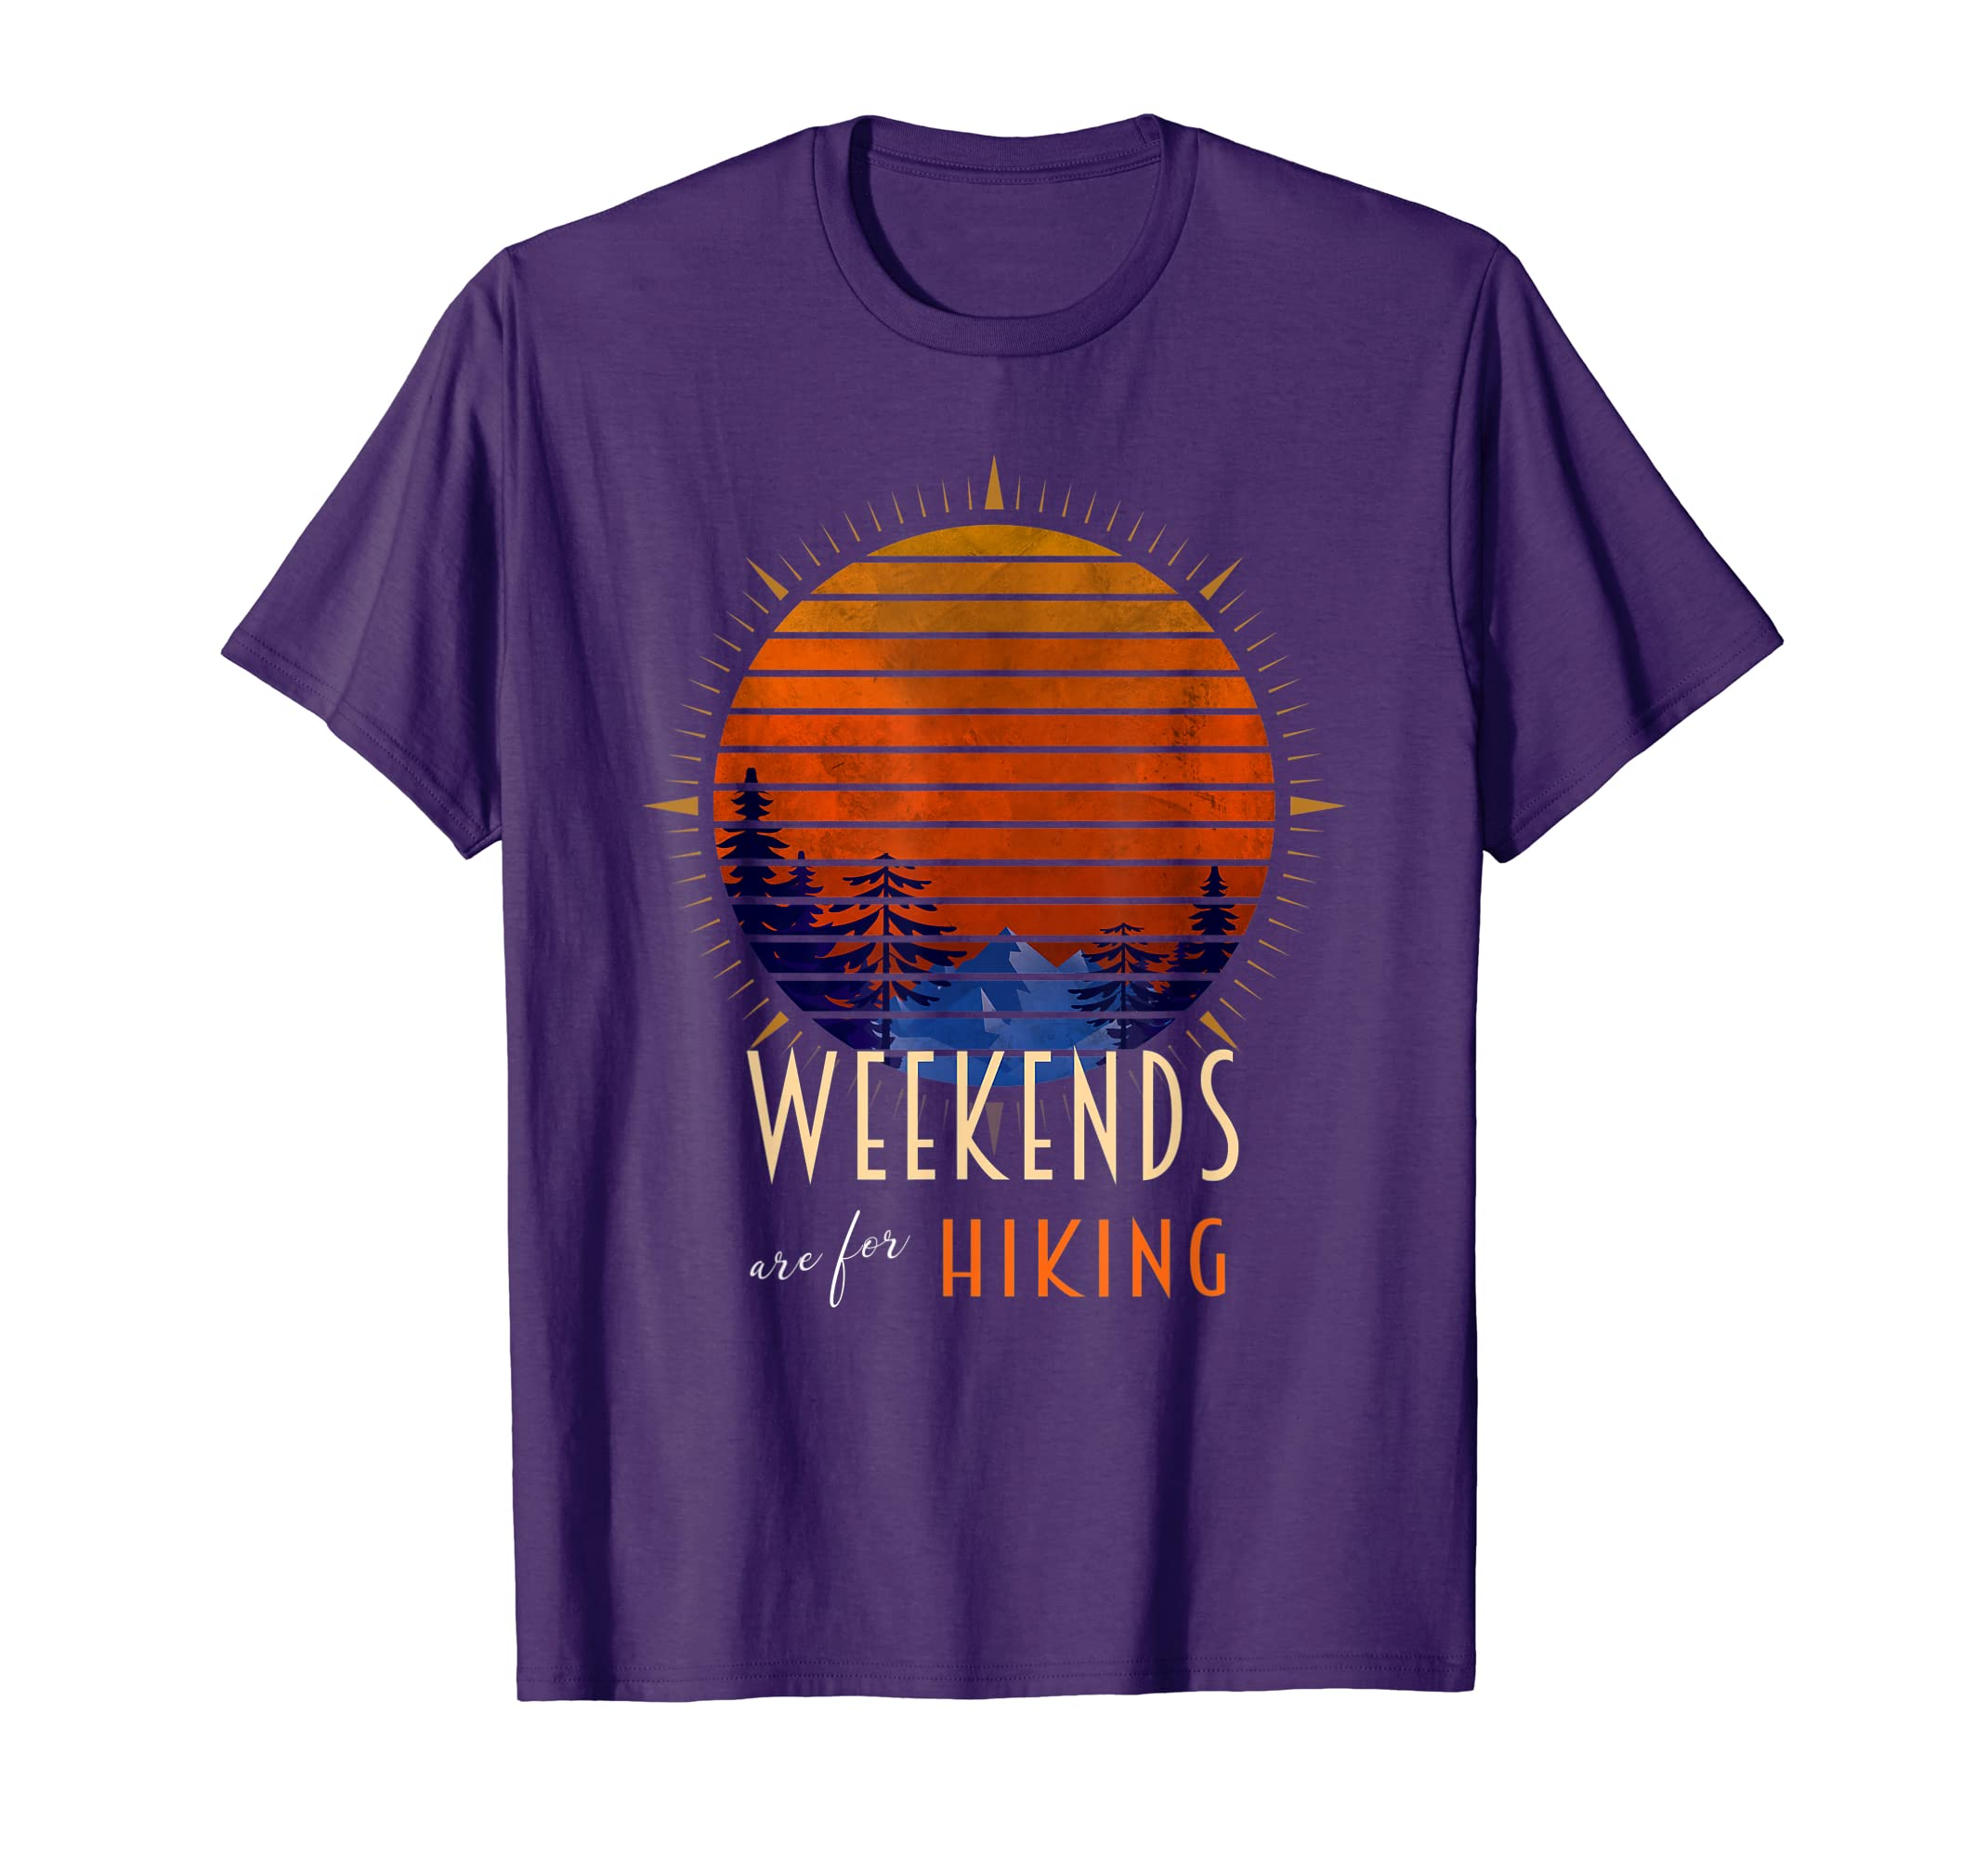 6eeb0f3e Amazon.com: Weekends are for Hiking - Landscape & Compass Graphic T-Shirt:  Clothing